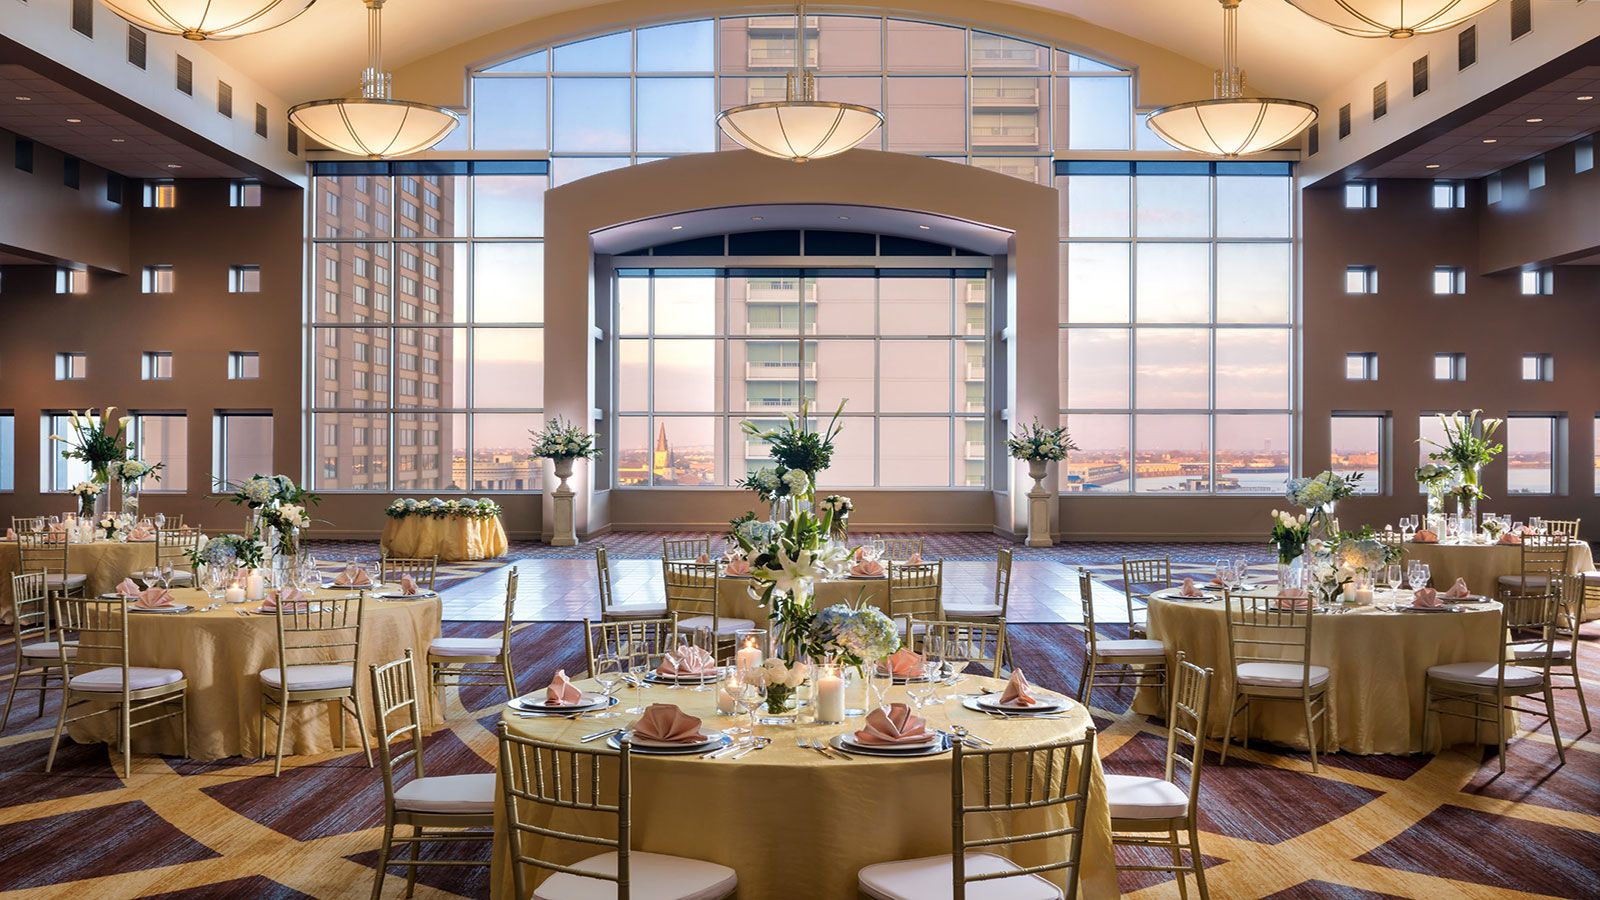 Wedding Ceremony Venues: Sheraton New Orleans Hotel